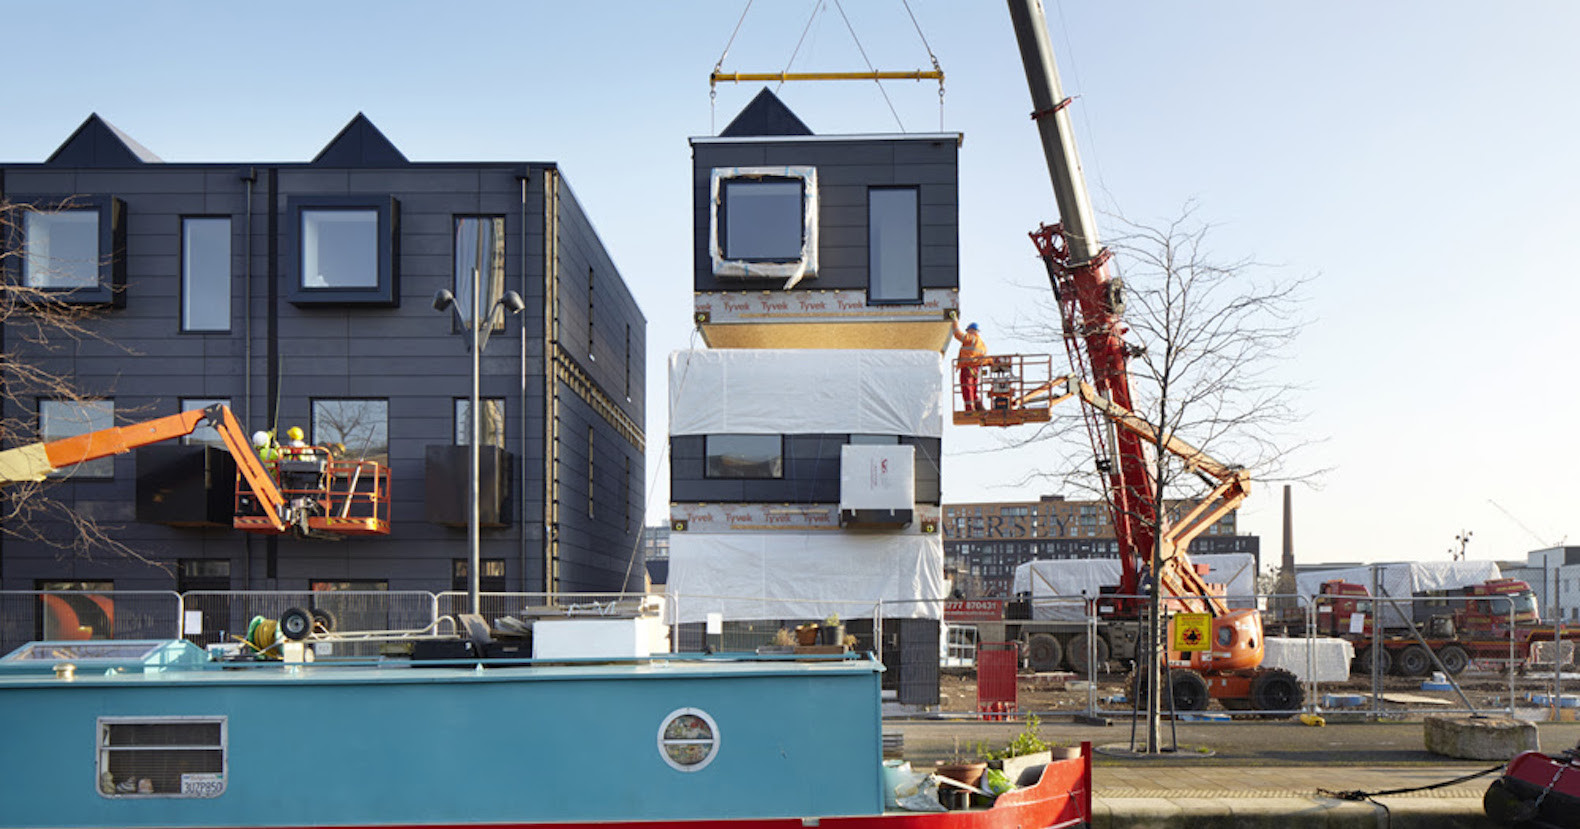 Stackable Prefab Homes In London Let You Design The Interior Before Moving  In